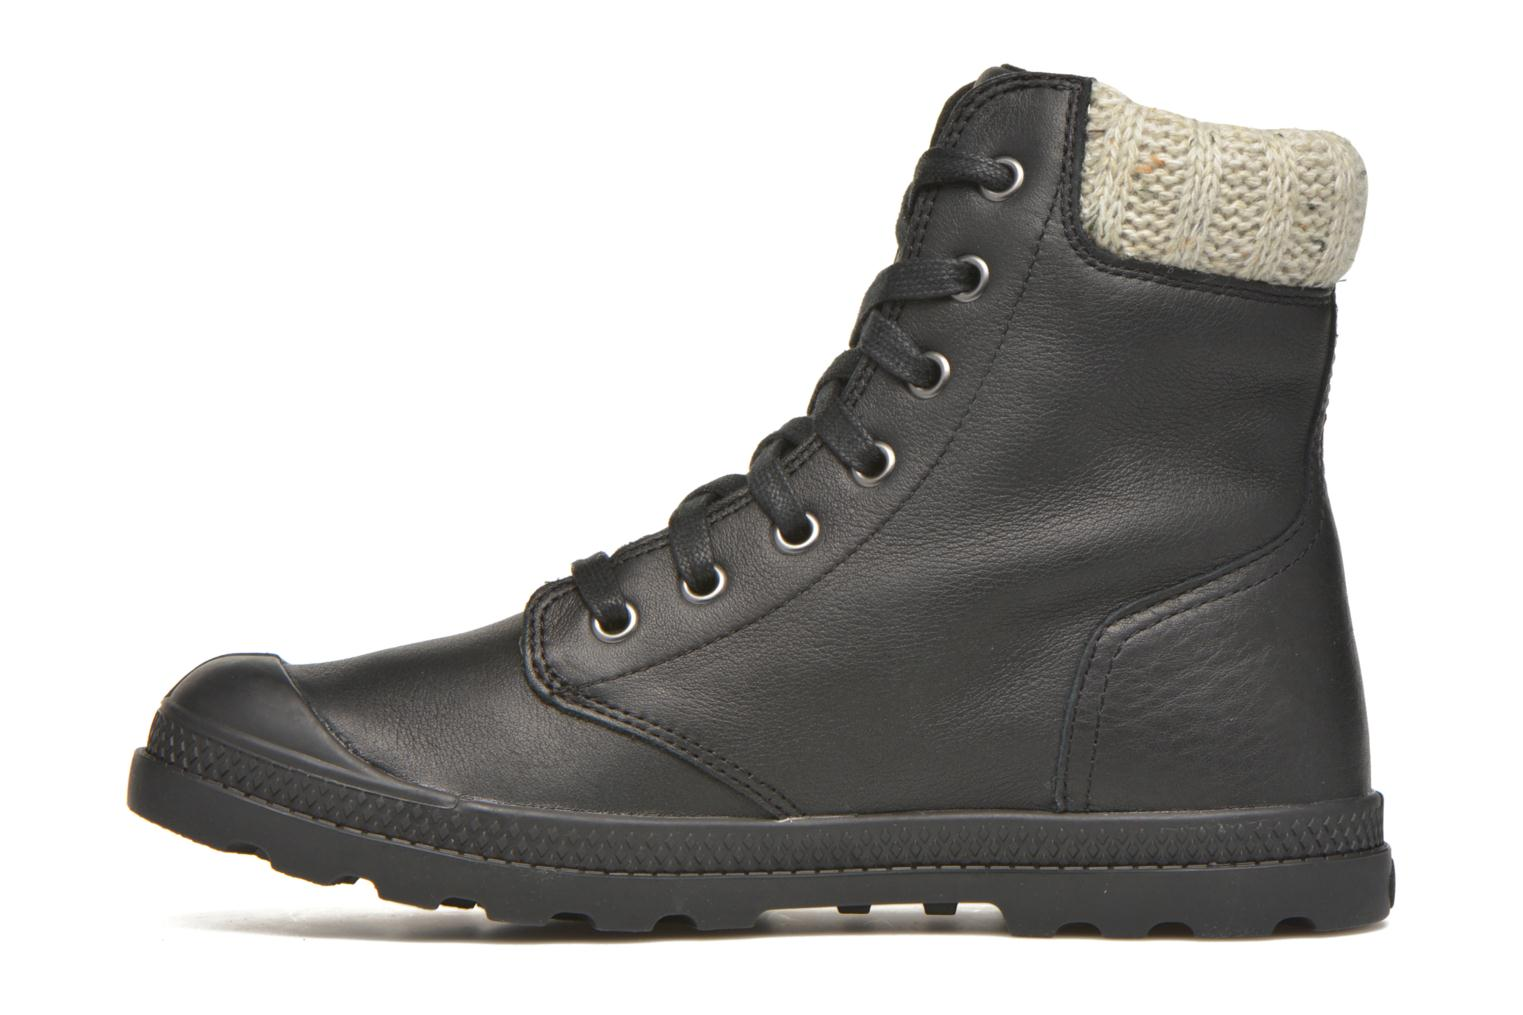 Bottines et boots Palladium Pampa Knit LP F Noir vue face